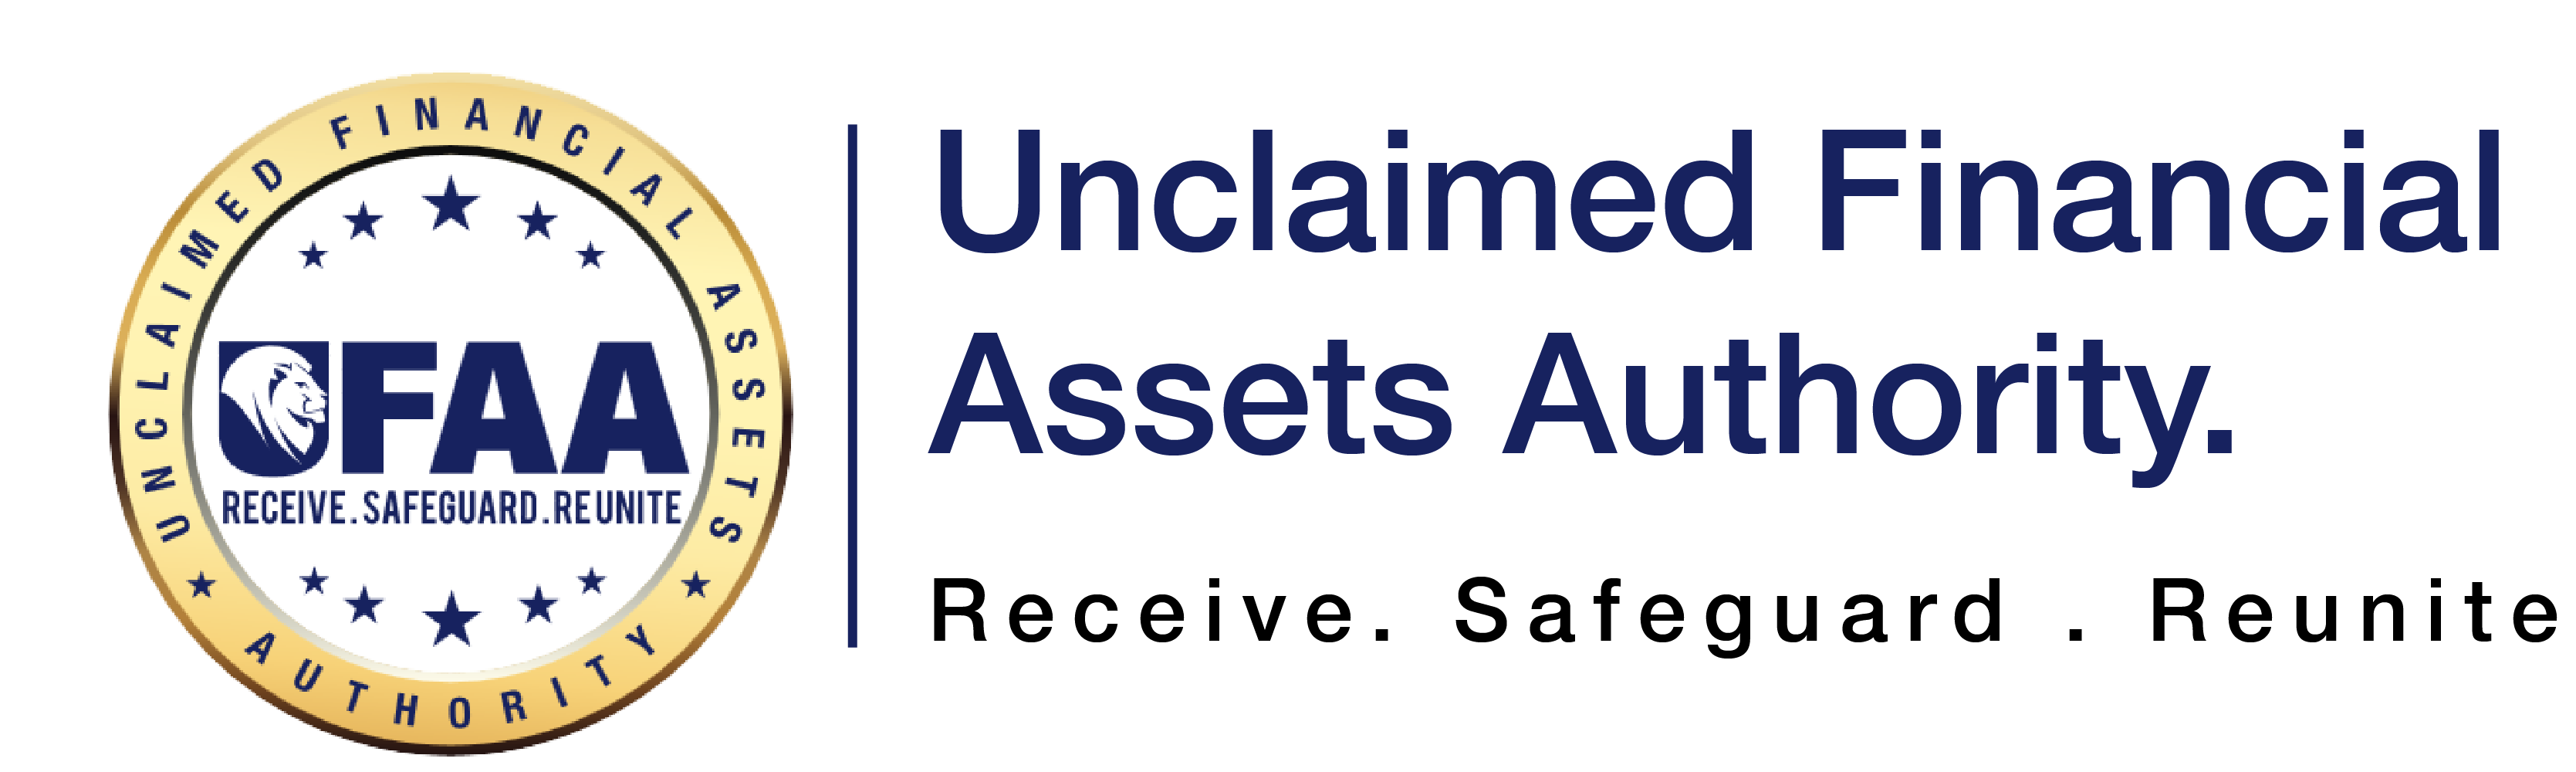 Unclaimed Financial Assets Authority